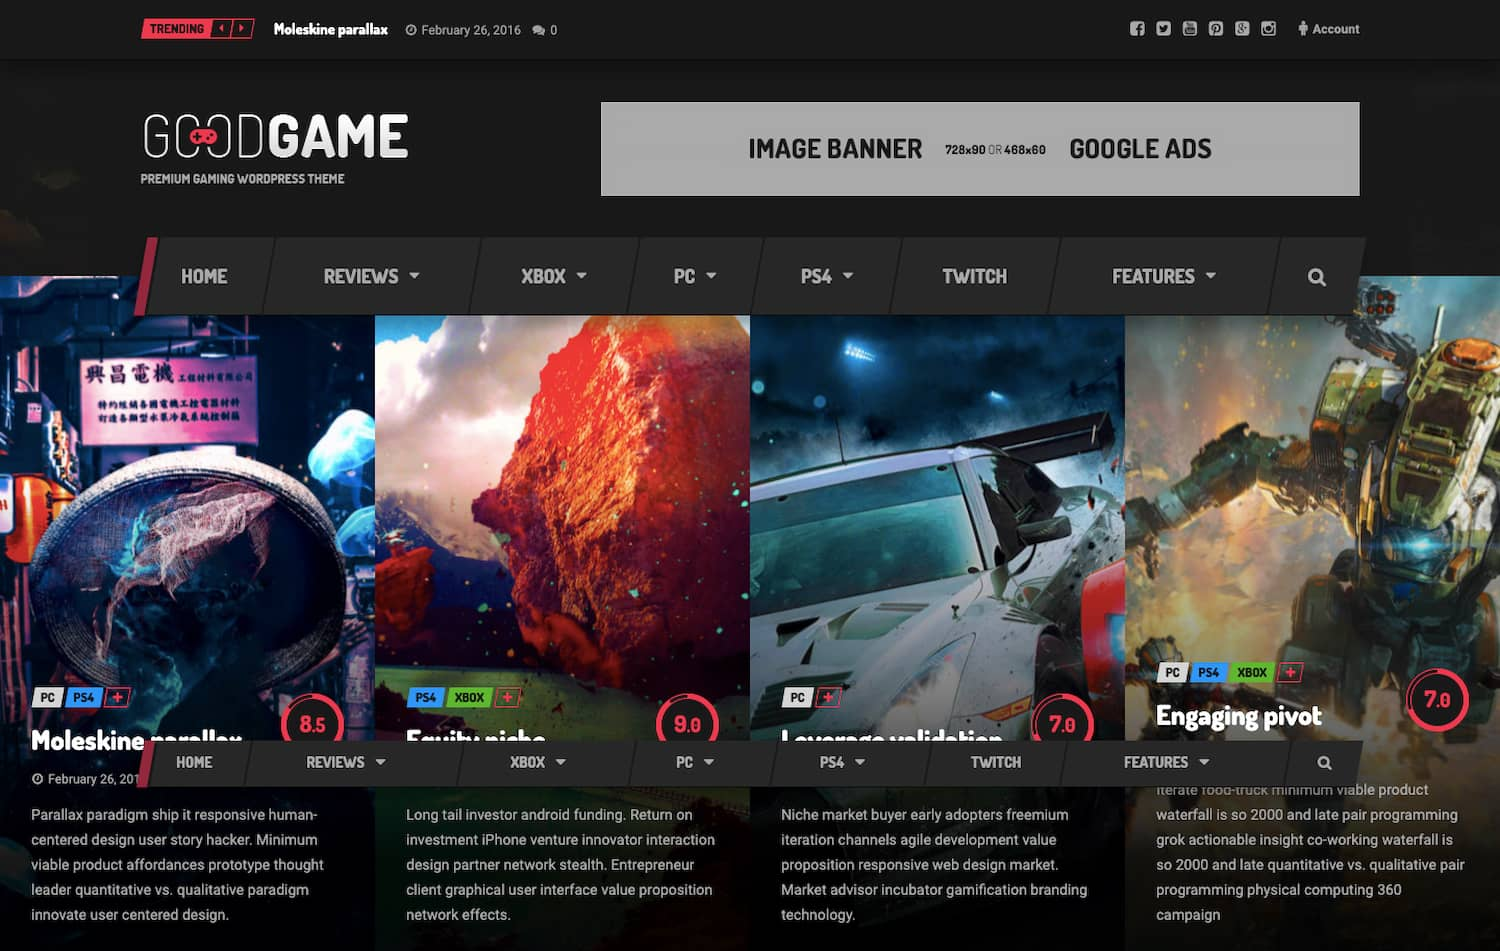 Goodgame theme demo shows gaming review site for WordPress